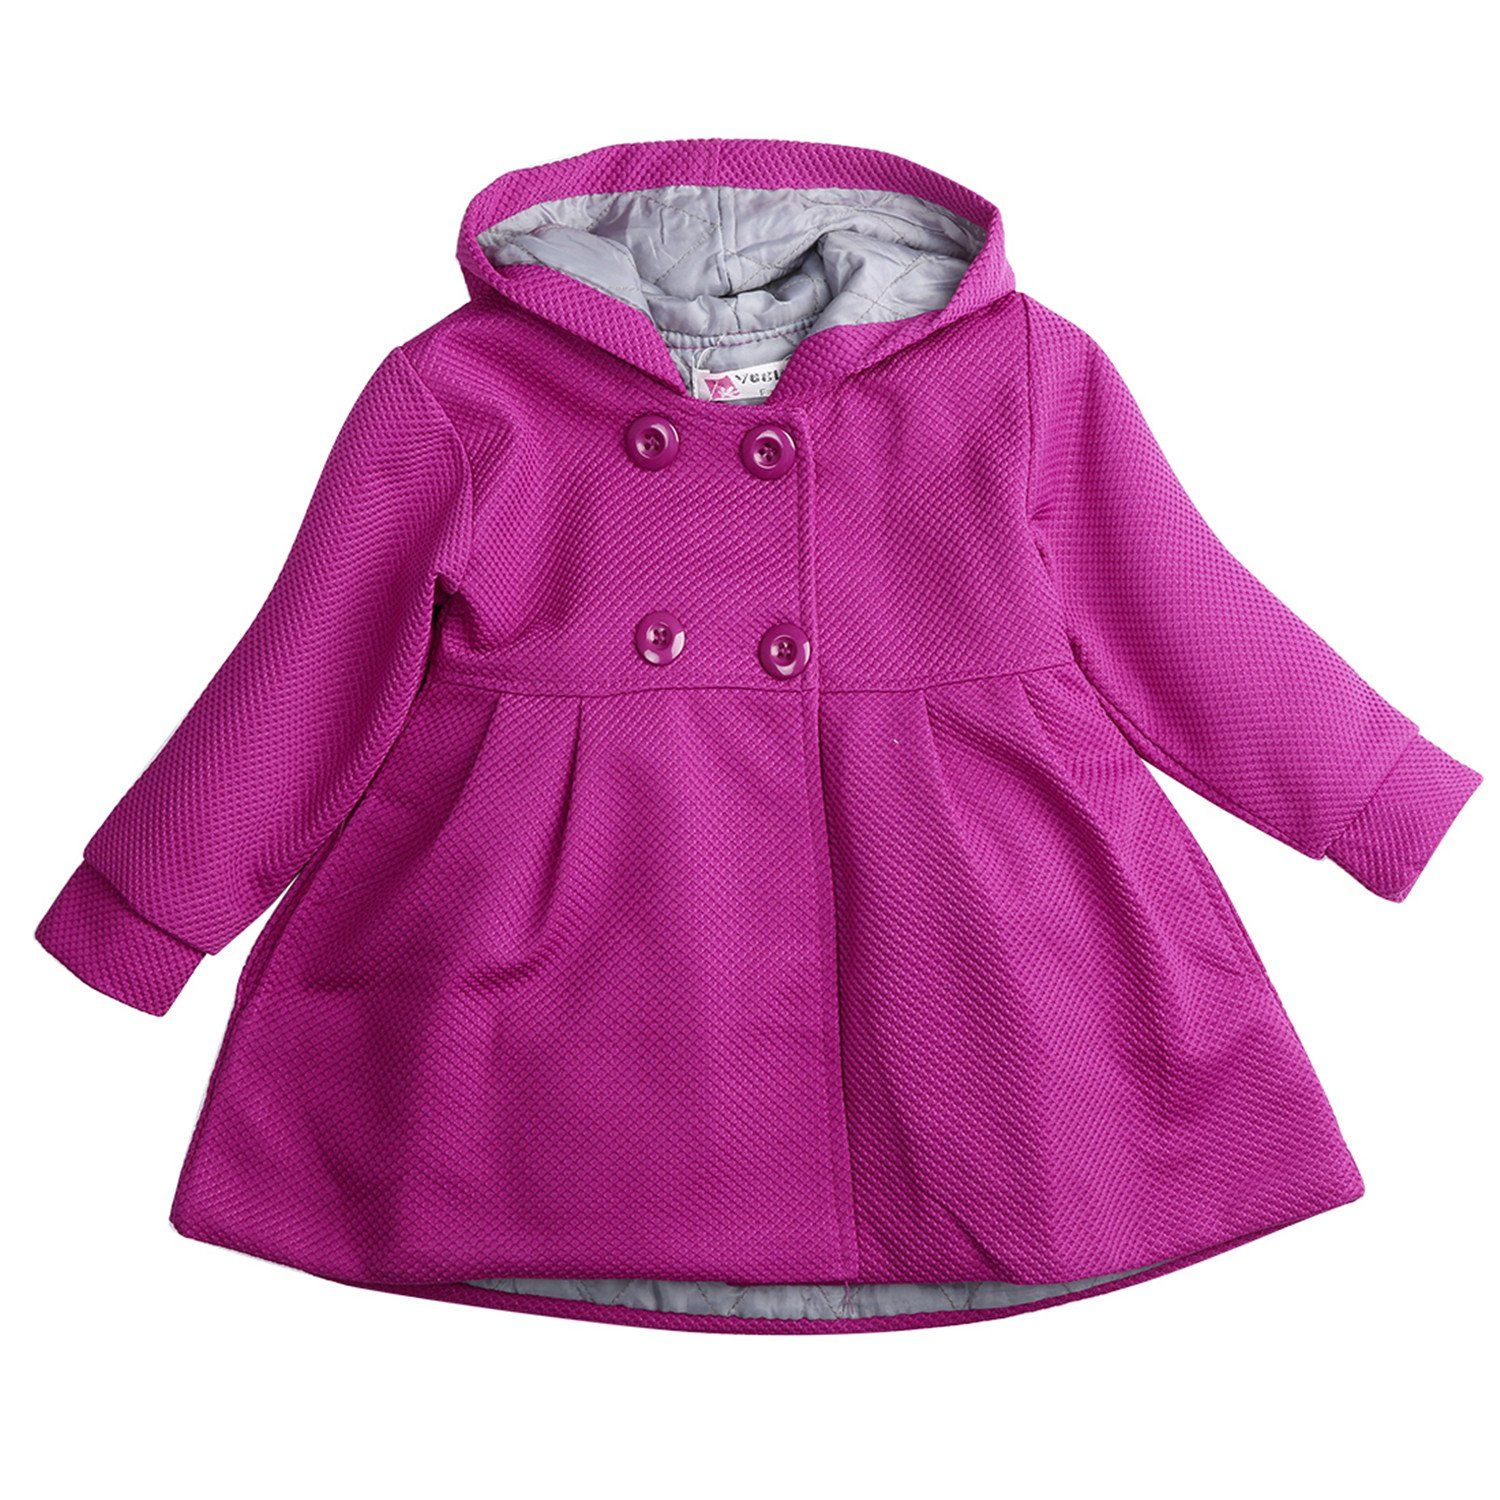 ece2989013f2 David Nadeau New Baby Toddler Girls Fall Winter Horn Button Hooded ...